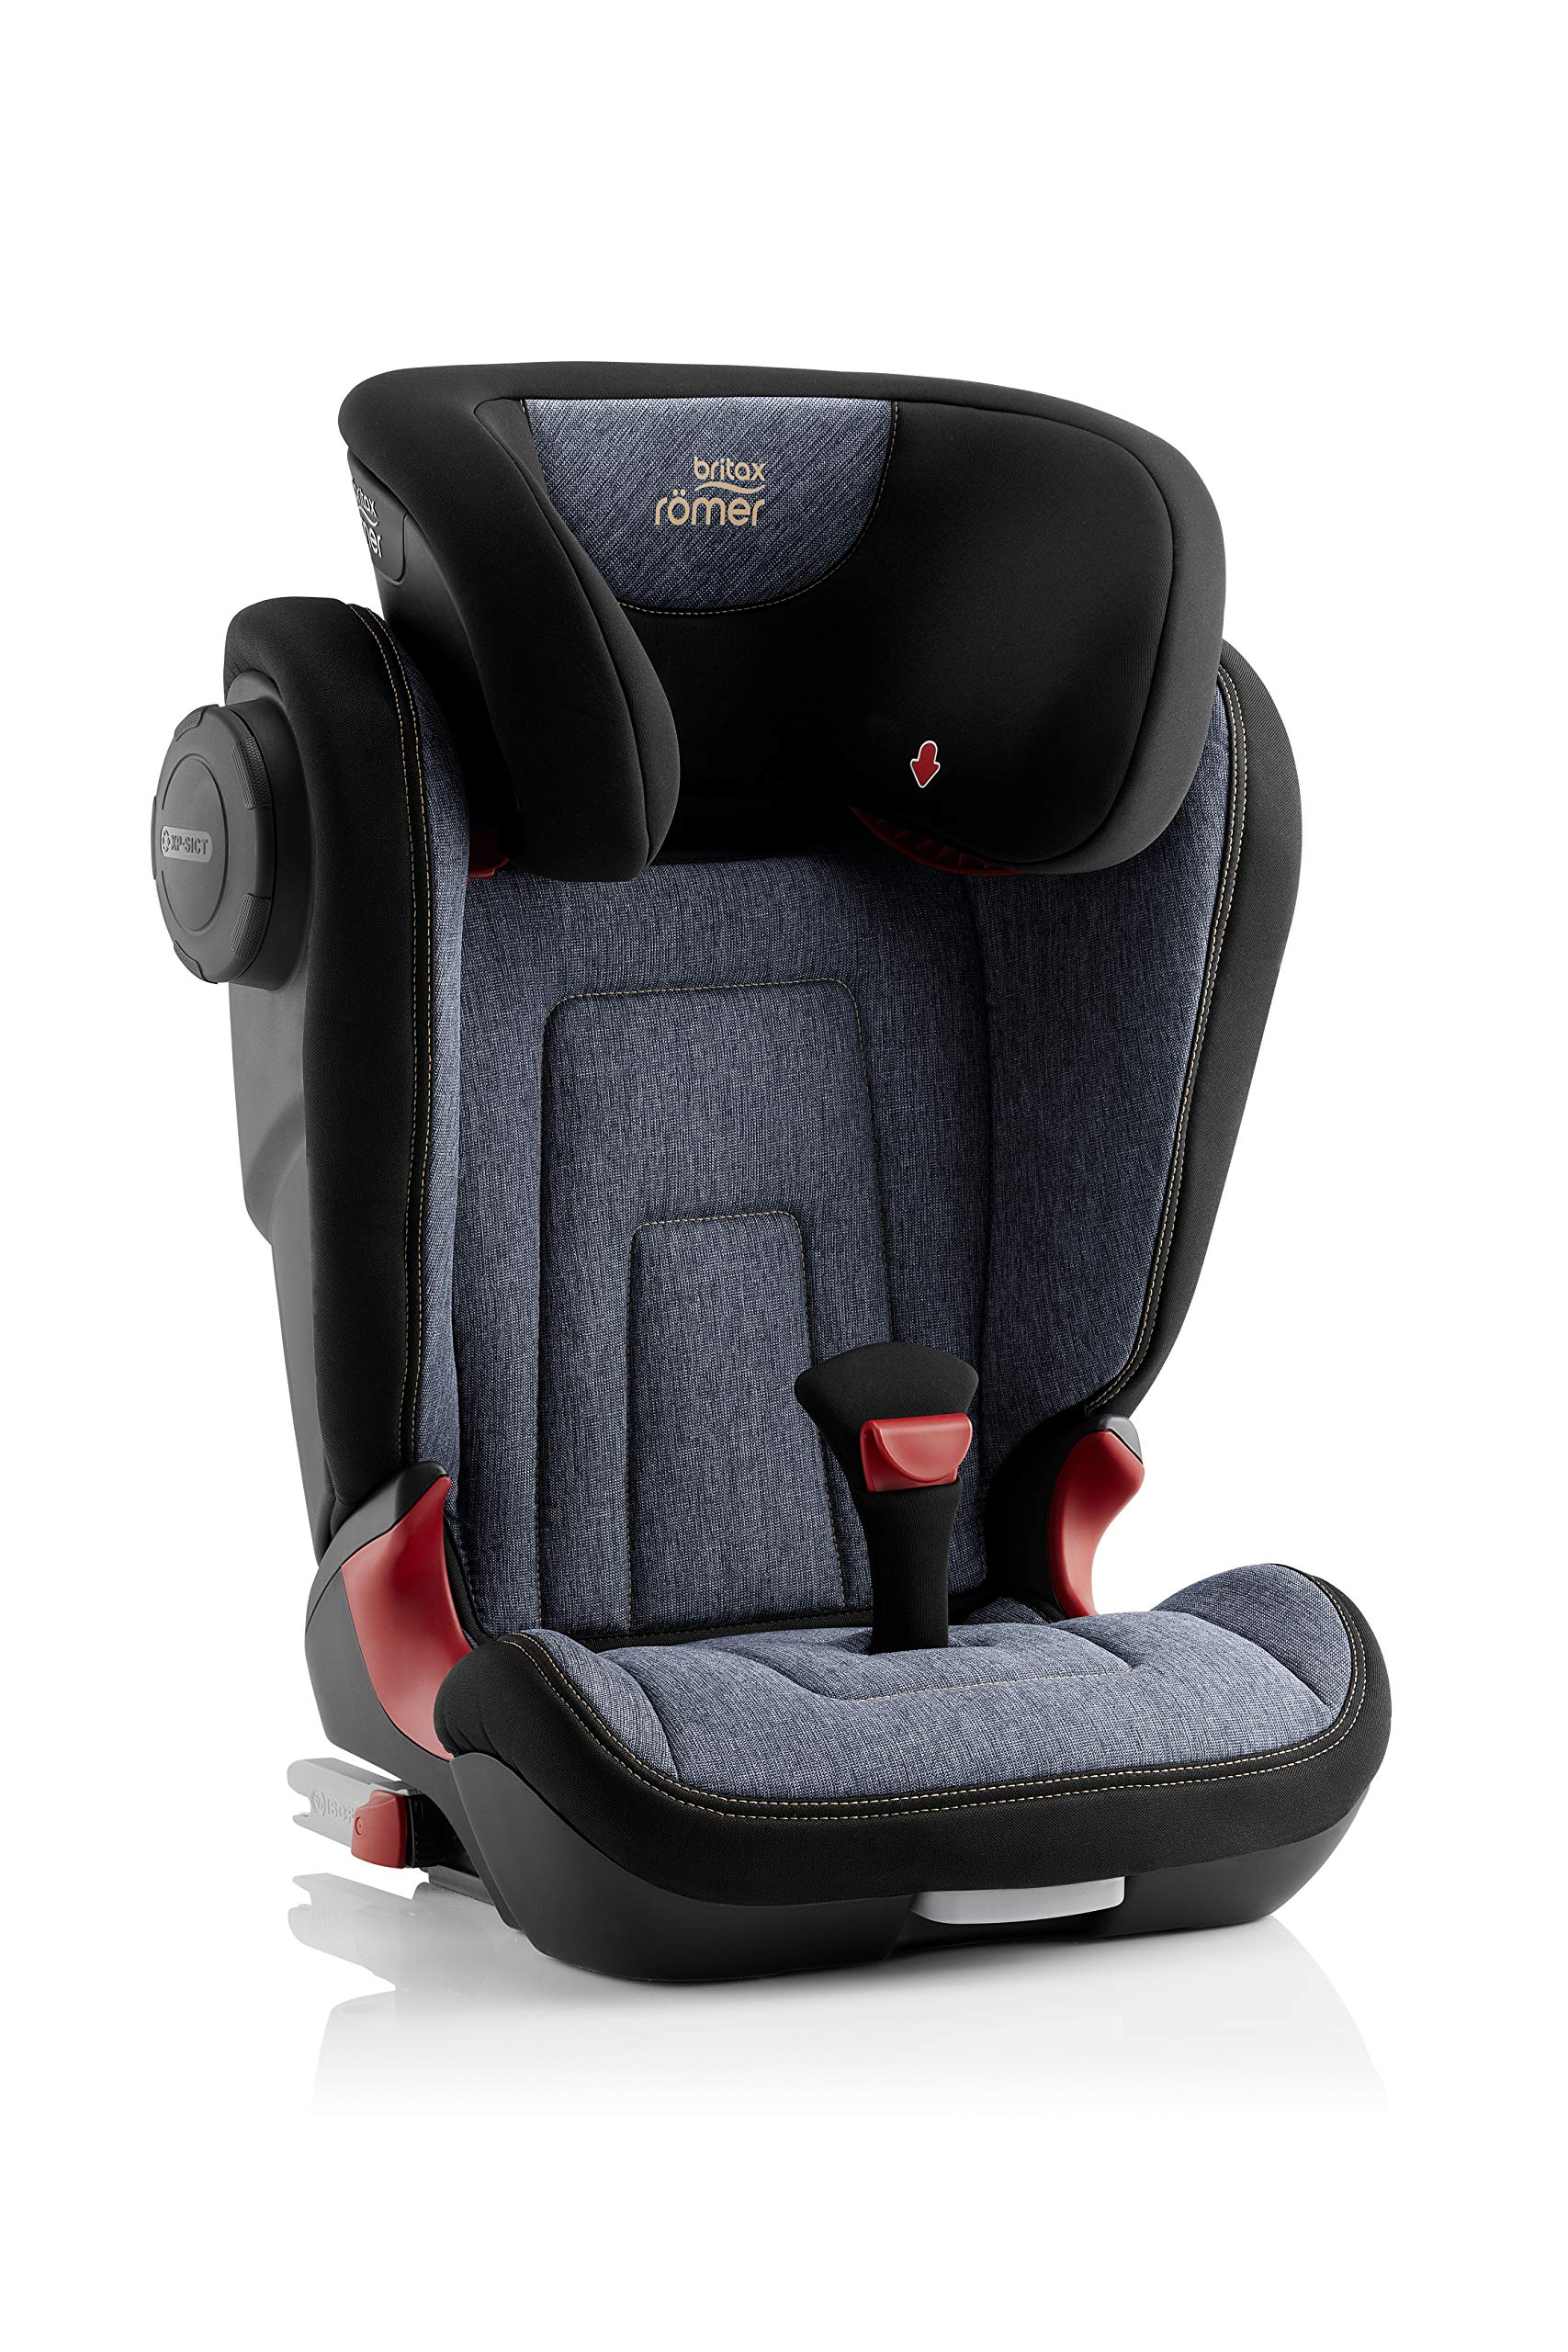 Britax Römer KIDFIX² S Group 2-3 (15-36kg) Car Seat - Blue Marble Britax Römer Advanced side impact protection - sict offers superior protection to your child in the event of a side collision. reducing impact forces by minimising the distance between the car and the car seat. Secure guard - helps to protect your child's delicate abdominal area by adding an extra - a 4th - contact point to the 3-point seat belt. High back booster - protects your child in 3 ways: provides head to hip protection; belt guides provide correct positioning of the seat belt and the padded headrest provides safety and comfort. 3